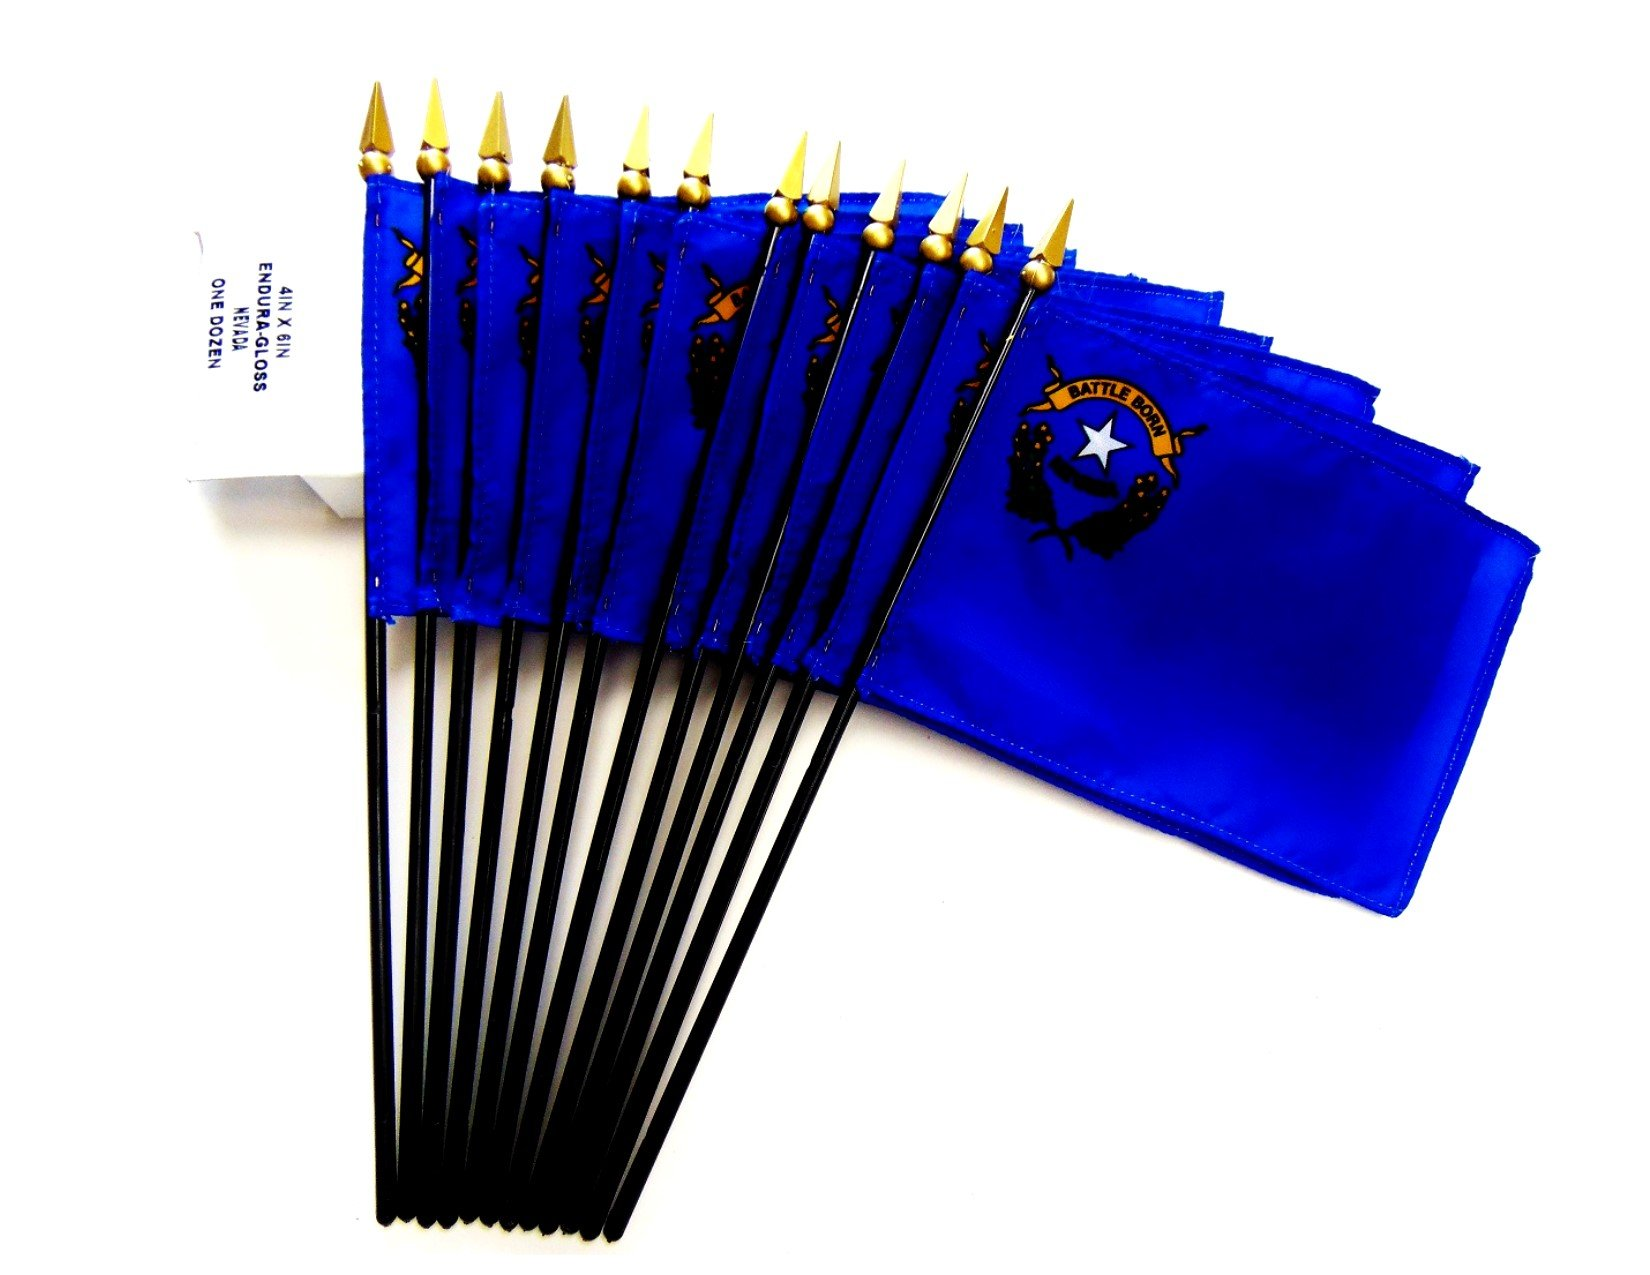 MADE IN USA!! Box of 12 Nevada 4''x6'' Miniature Desk & Table Flags; 12 American Made Small Mini Nevada State Flags in a Custom Made Cardboard Box Specifically Made for These Flags